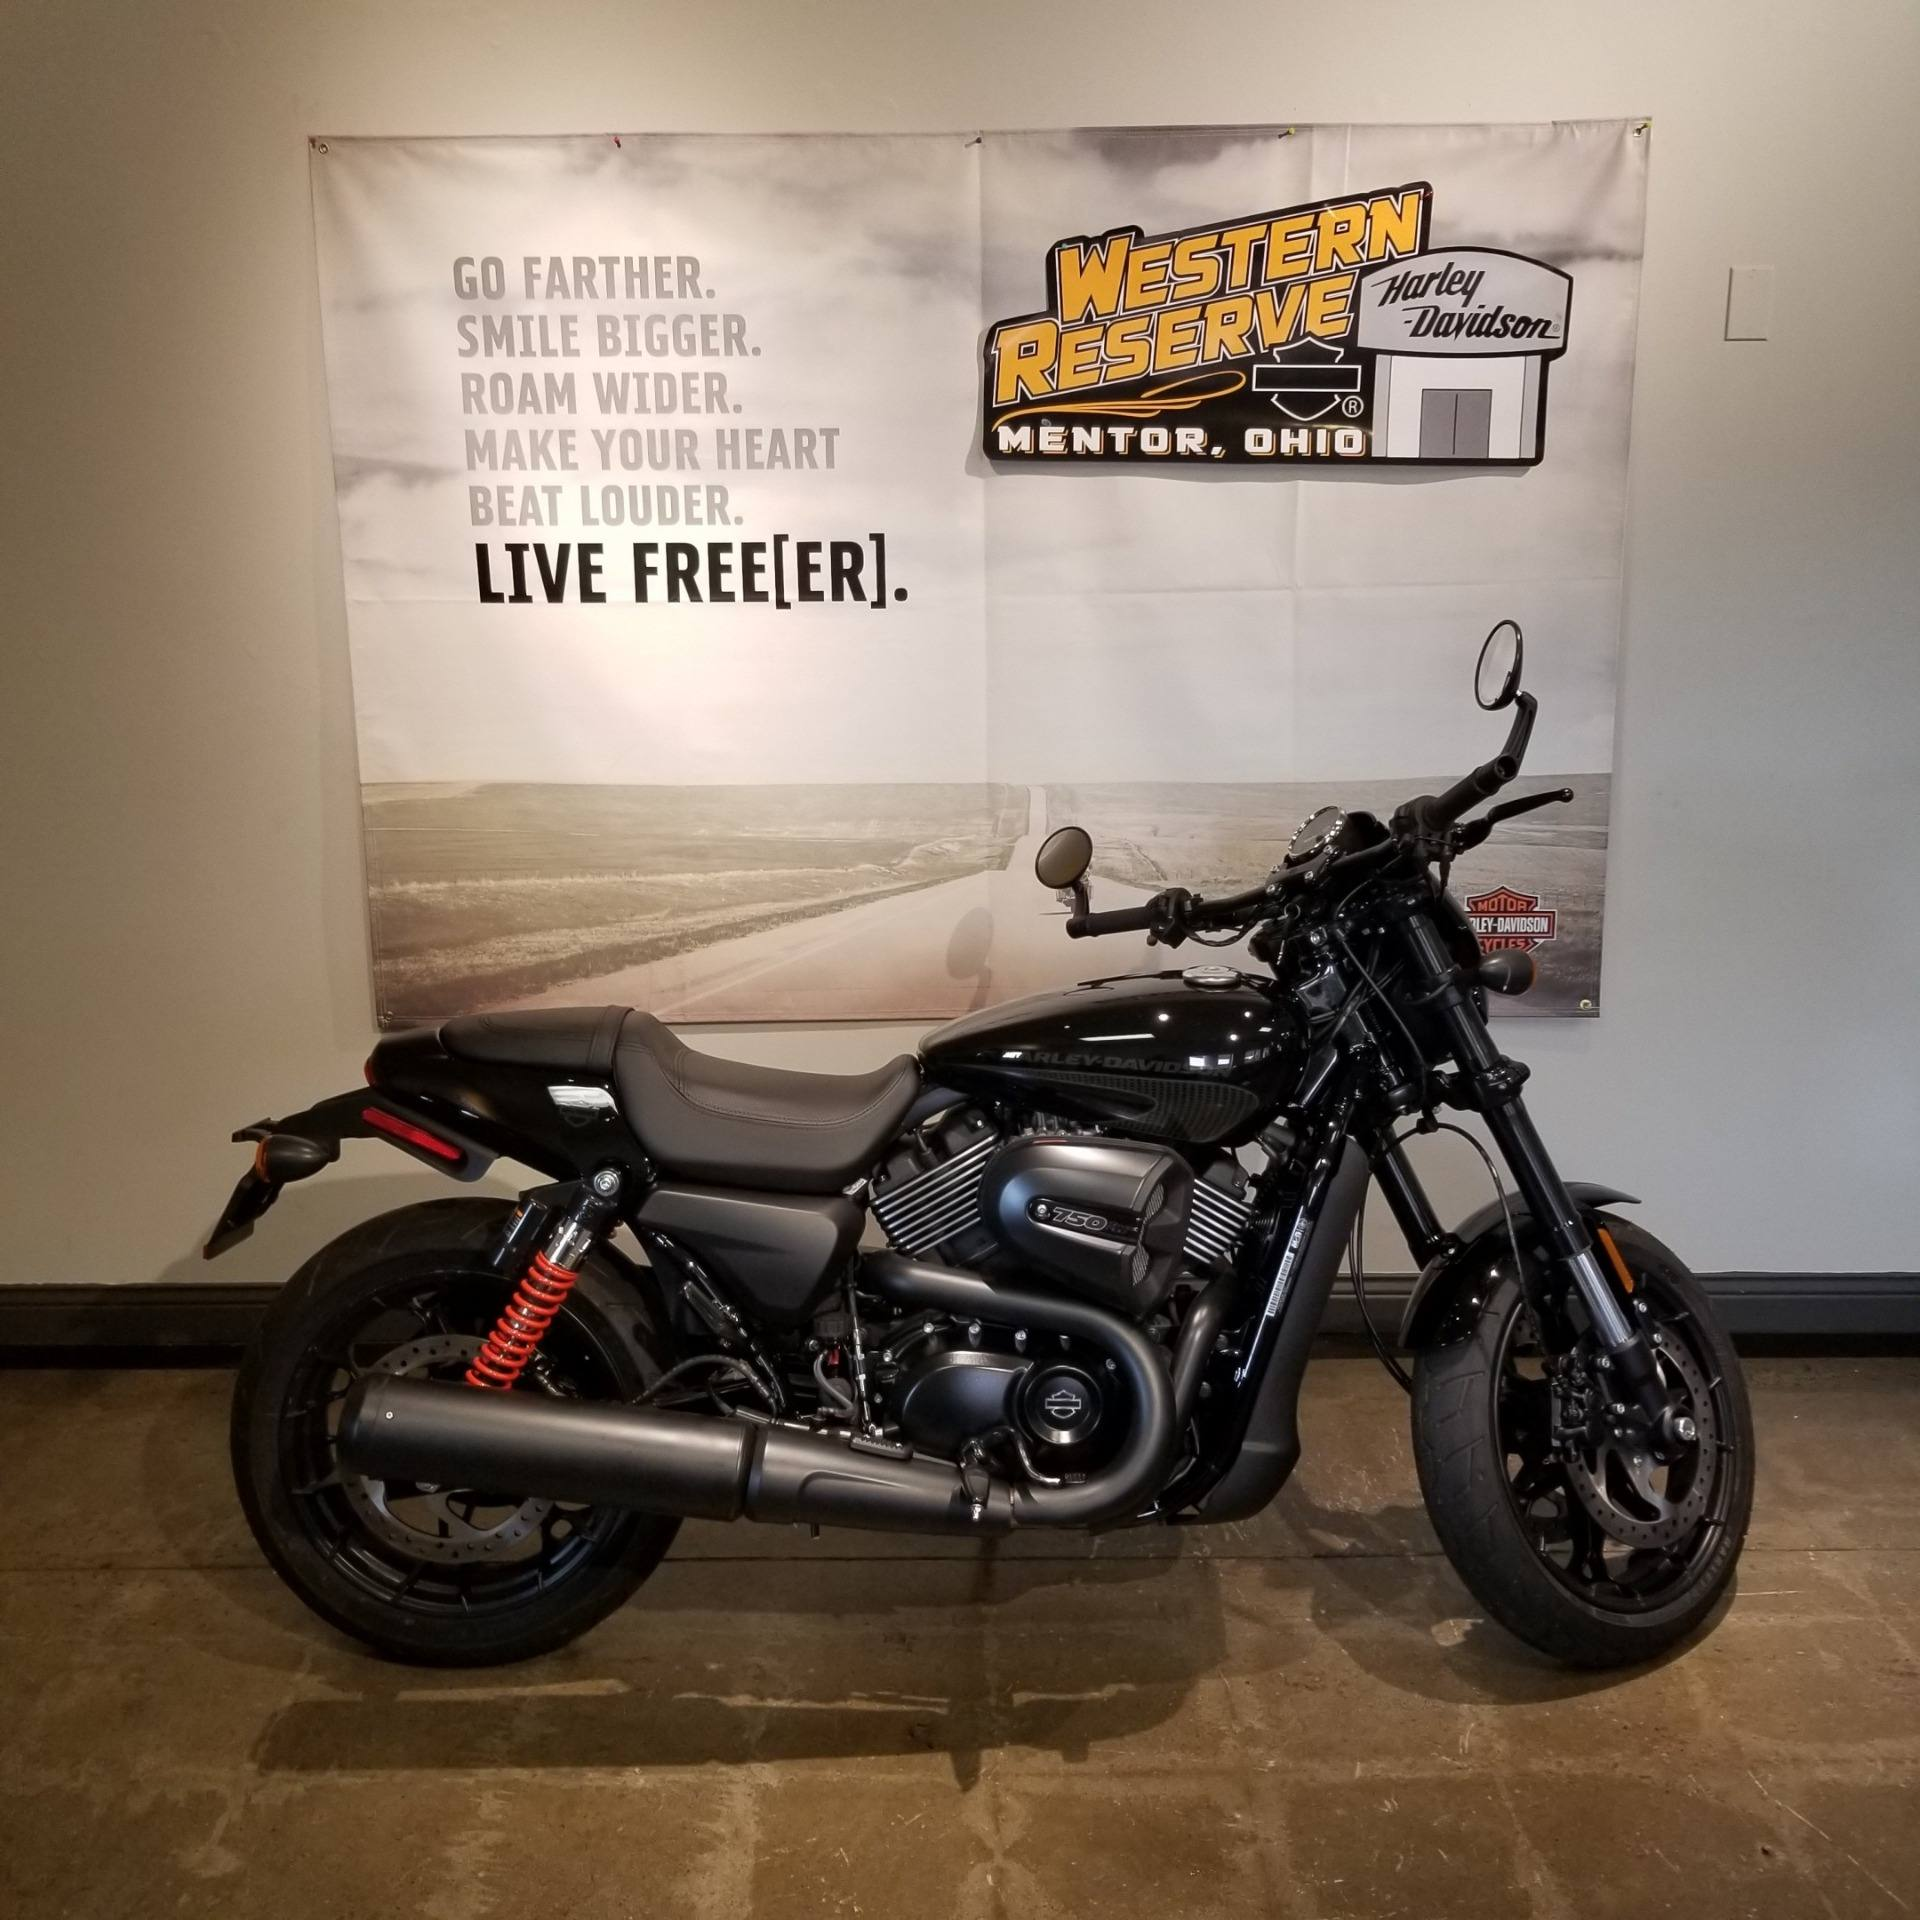 2018 Harley-Davidson Street Rod® in Mentor, Ohio - Photo 1